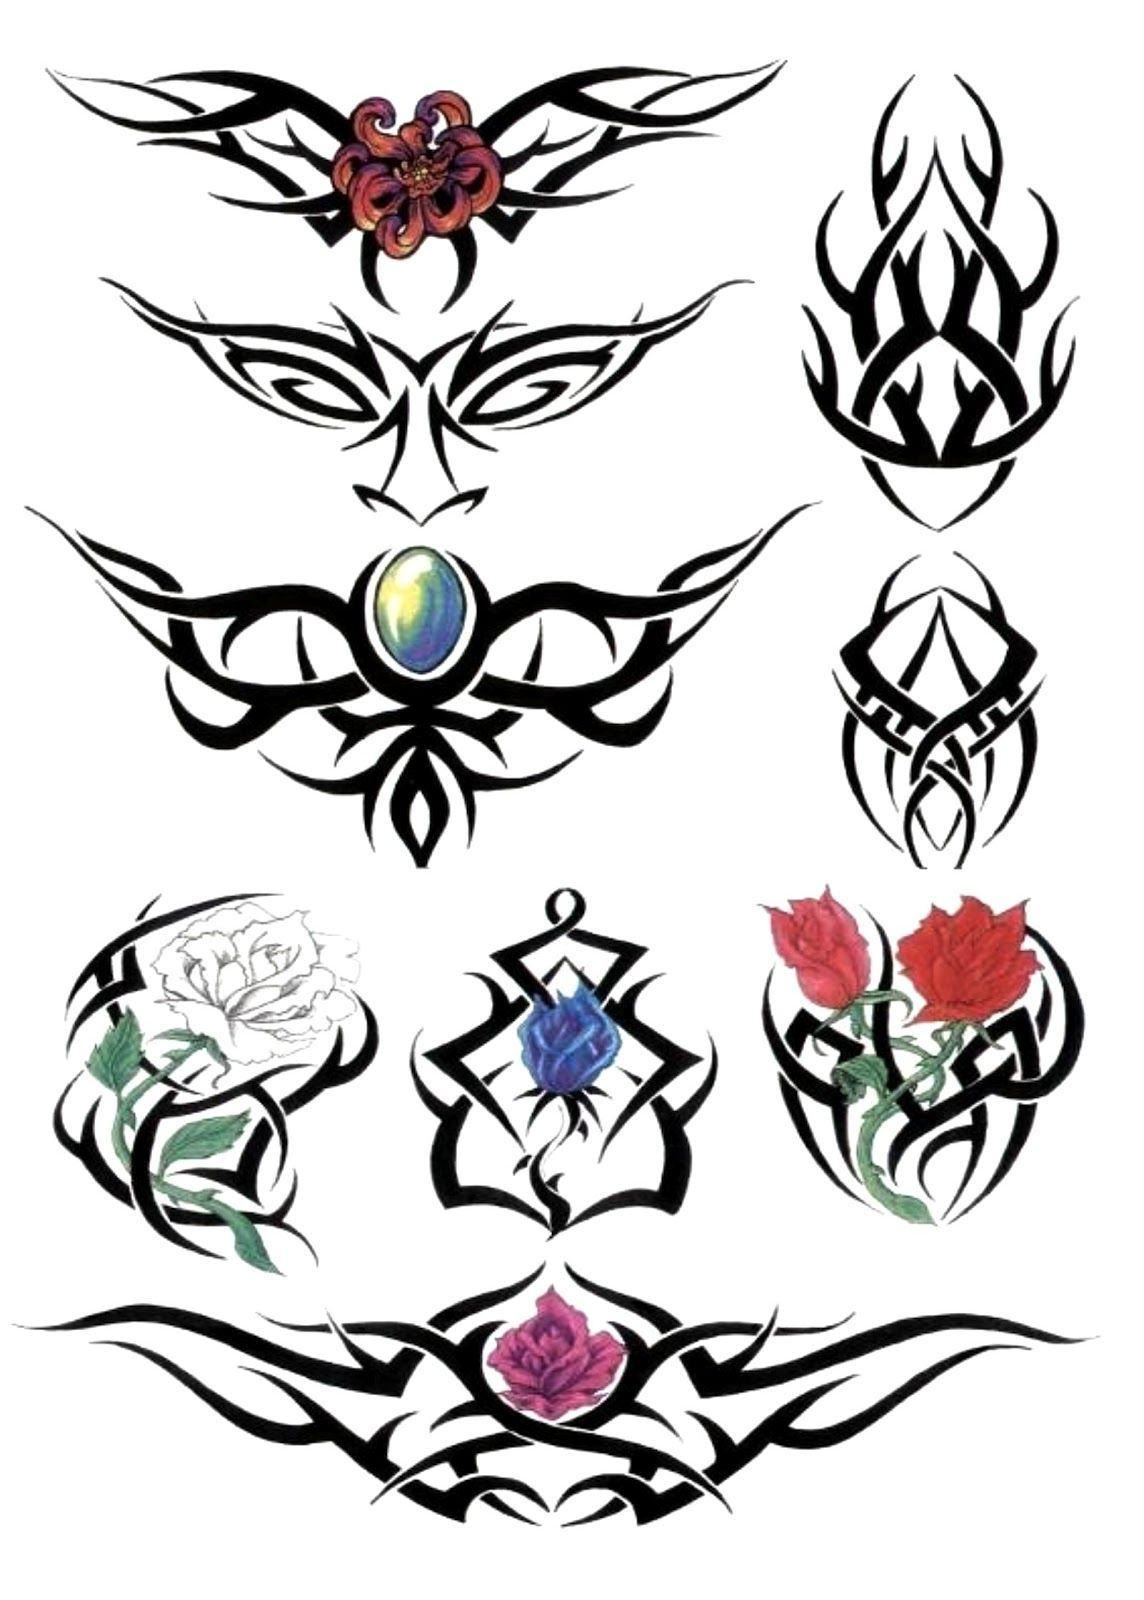 Lower back tattoo ideas for men pin by liam haigh on character design  tattoo ideas  pinterest